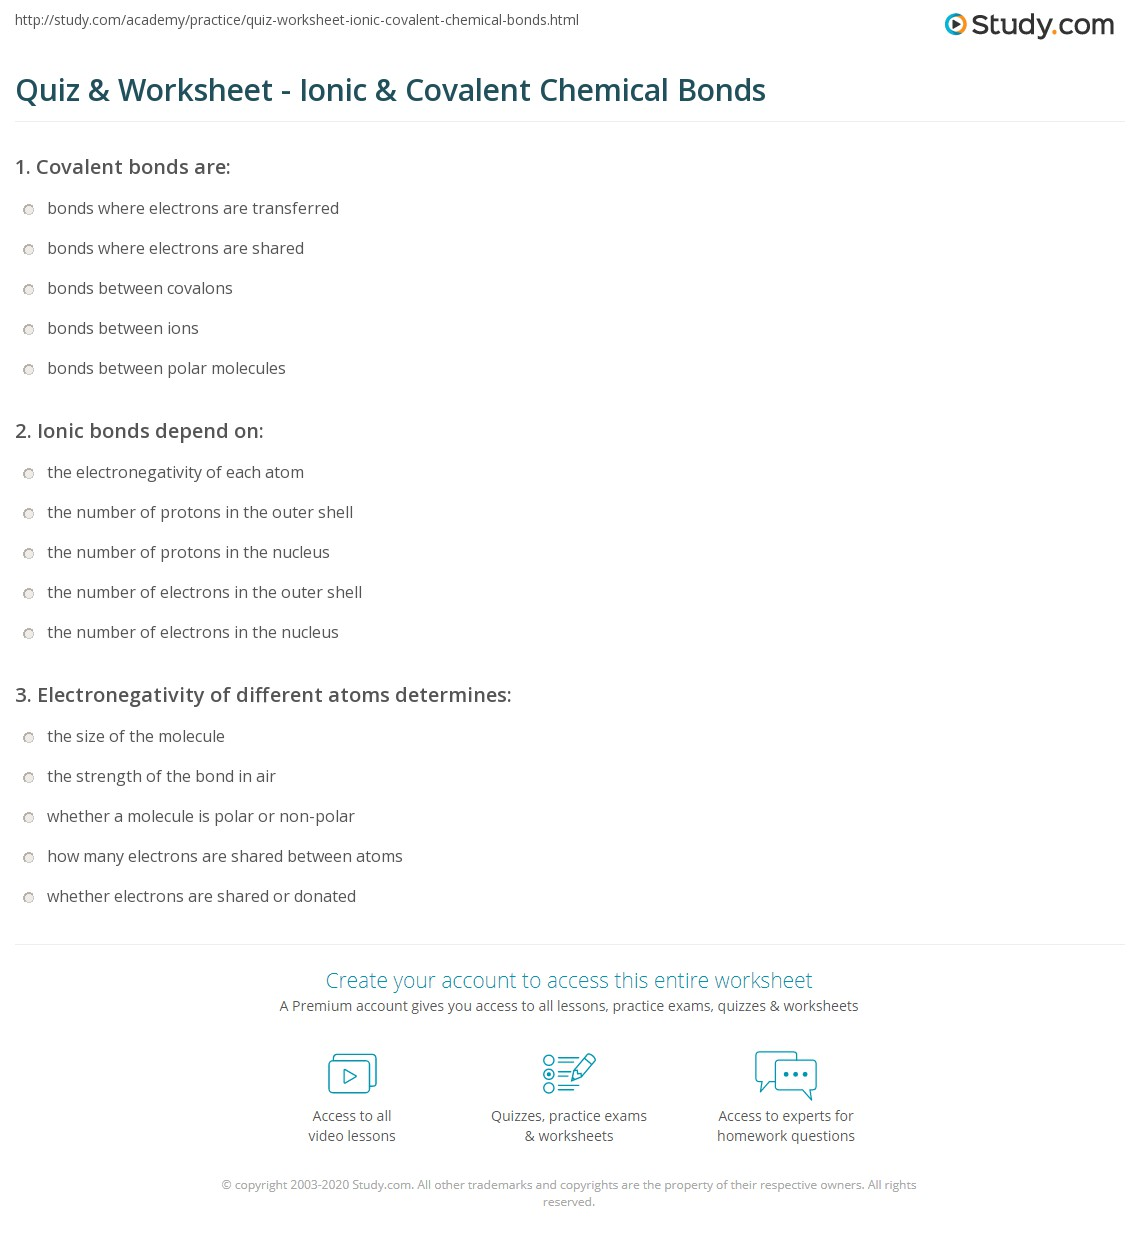 Worksheets Chemical Bonding Worksheet Answers ionic and covalent compounds worksheet worksheets kristawiltbank quiz chemical bonds study com print vs